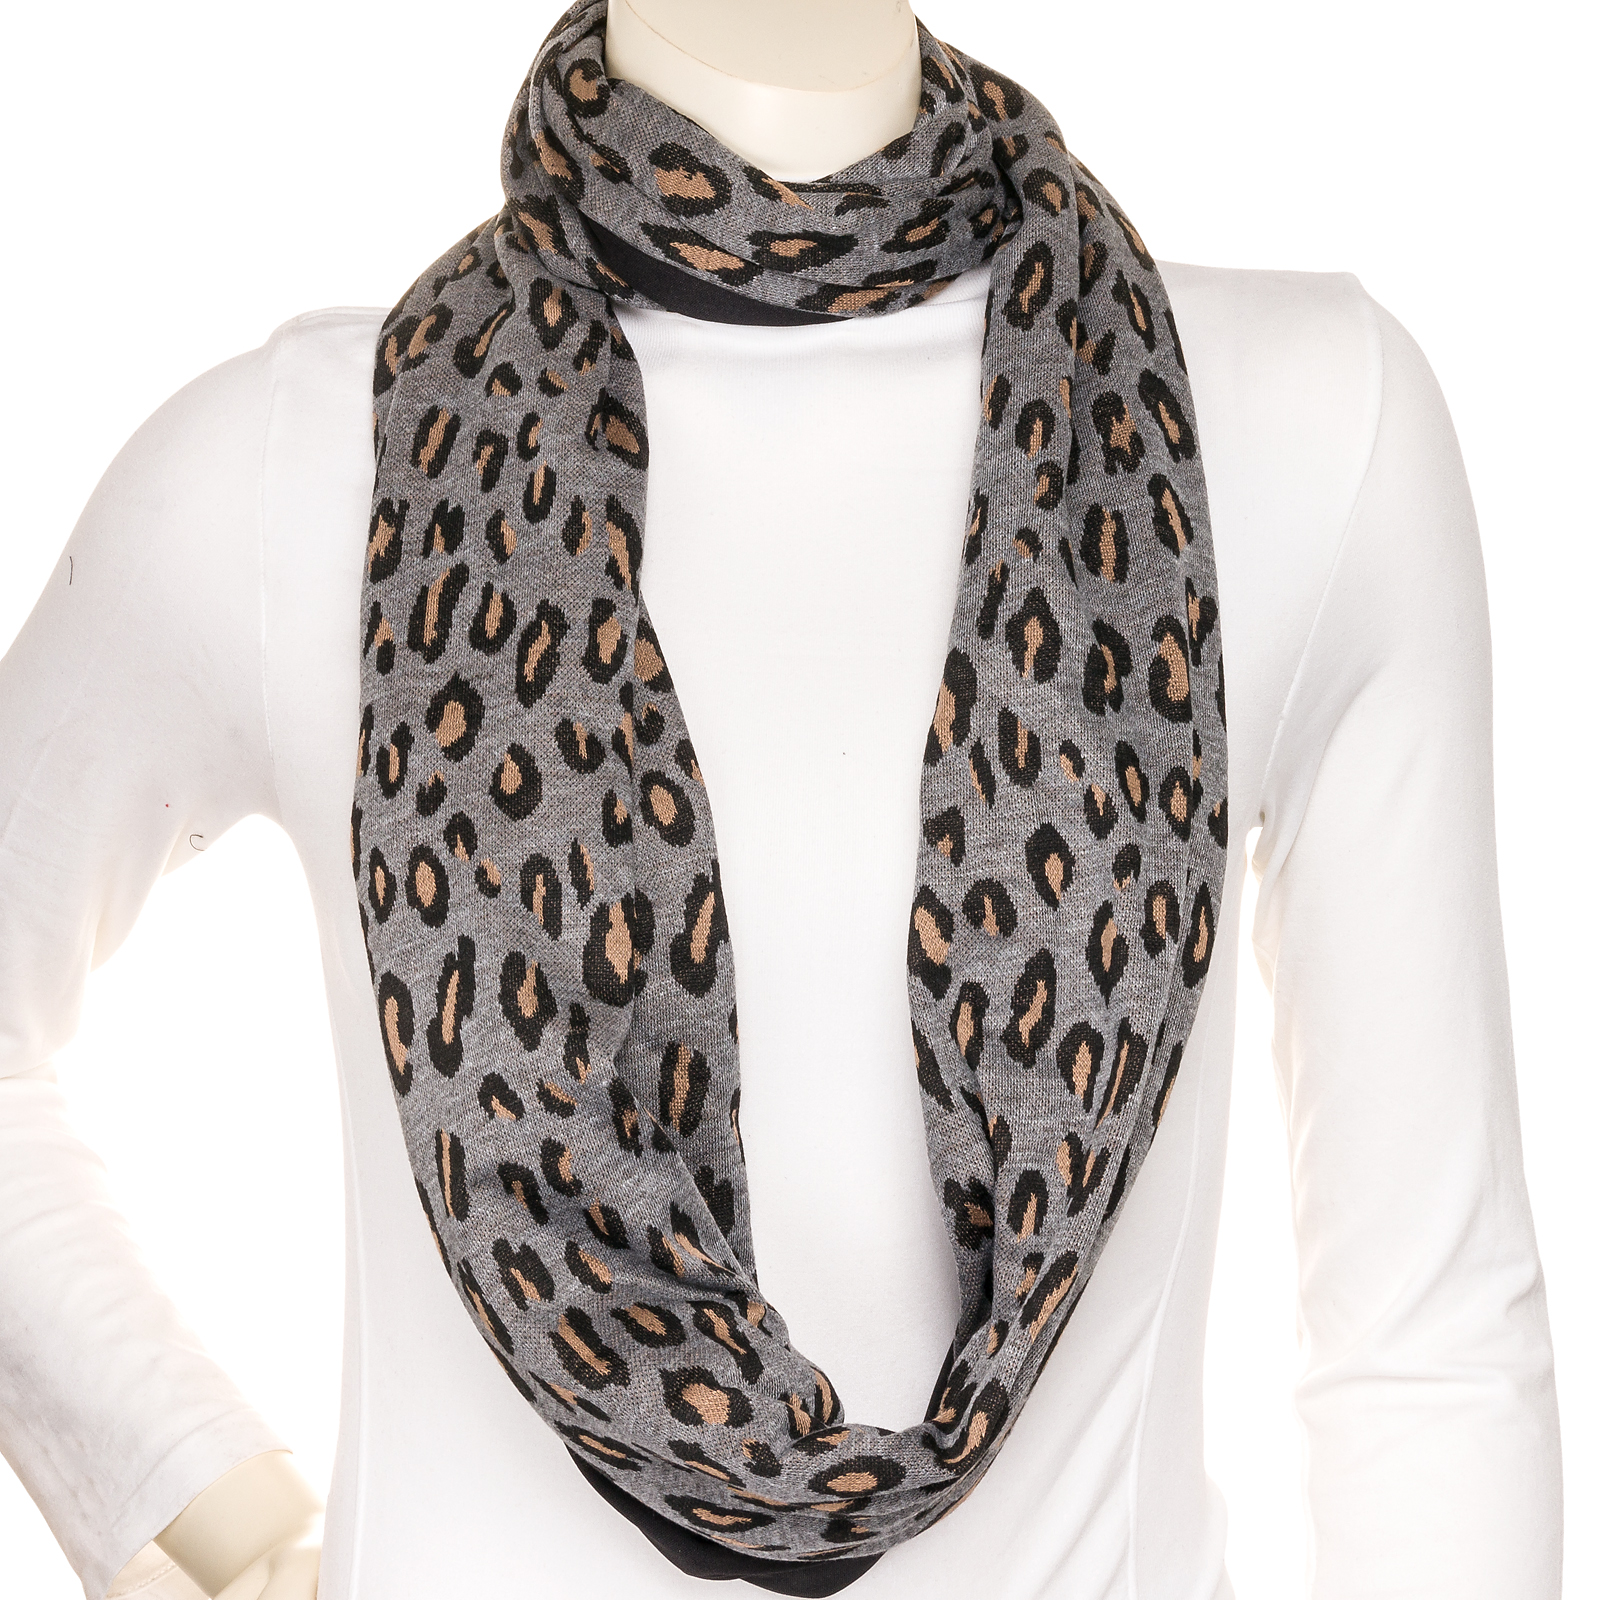 Sholdit women 39 s infinity clutch wrap purse travel neck shoulder scarf ebay for Travel scarf